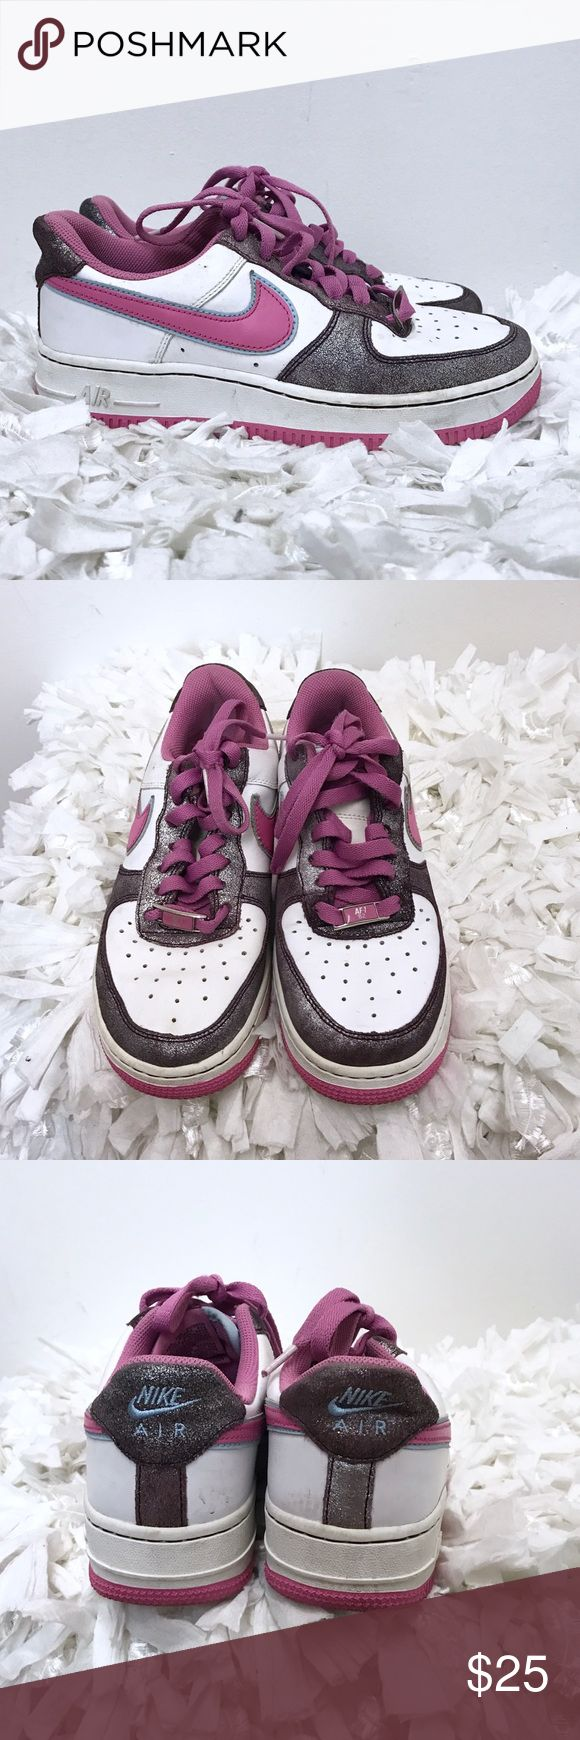 Nike Air Force 1 sneakers Woman's Sz 6 white pink Nike sneakers. Good condition. Some normal wear, nothing major. Clean. Sz 6. Nike Shoes Sneakers